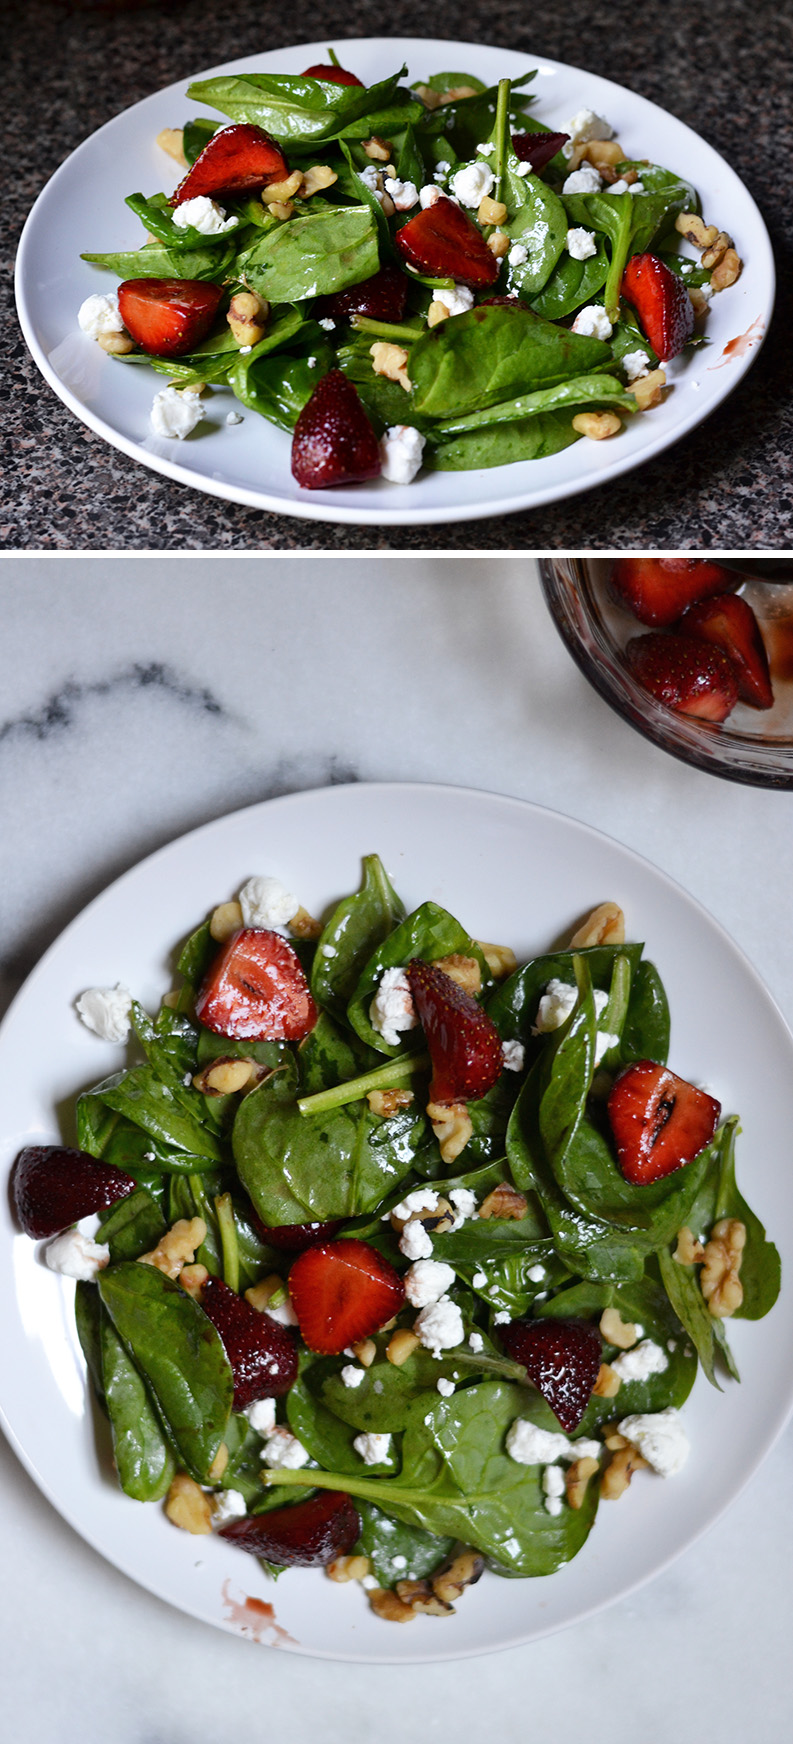 Balsamic Strawberries and Goat Cheese Salad